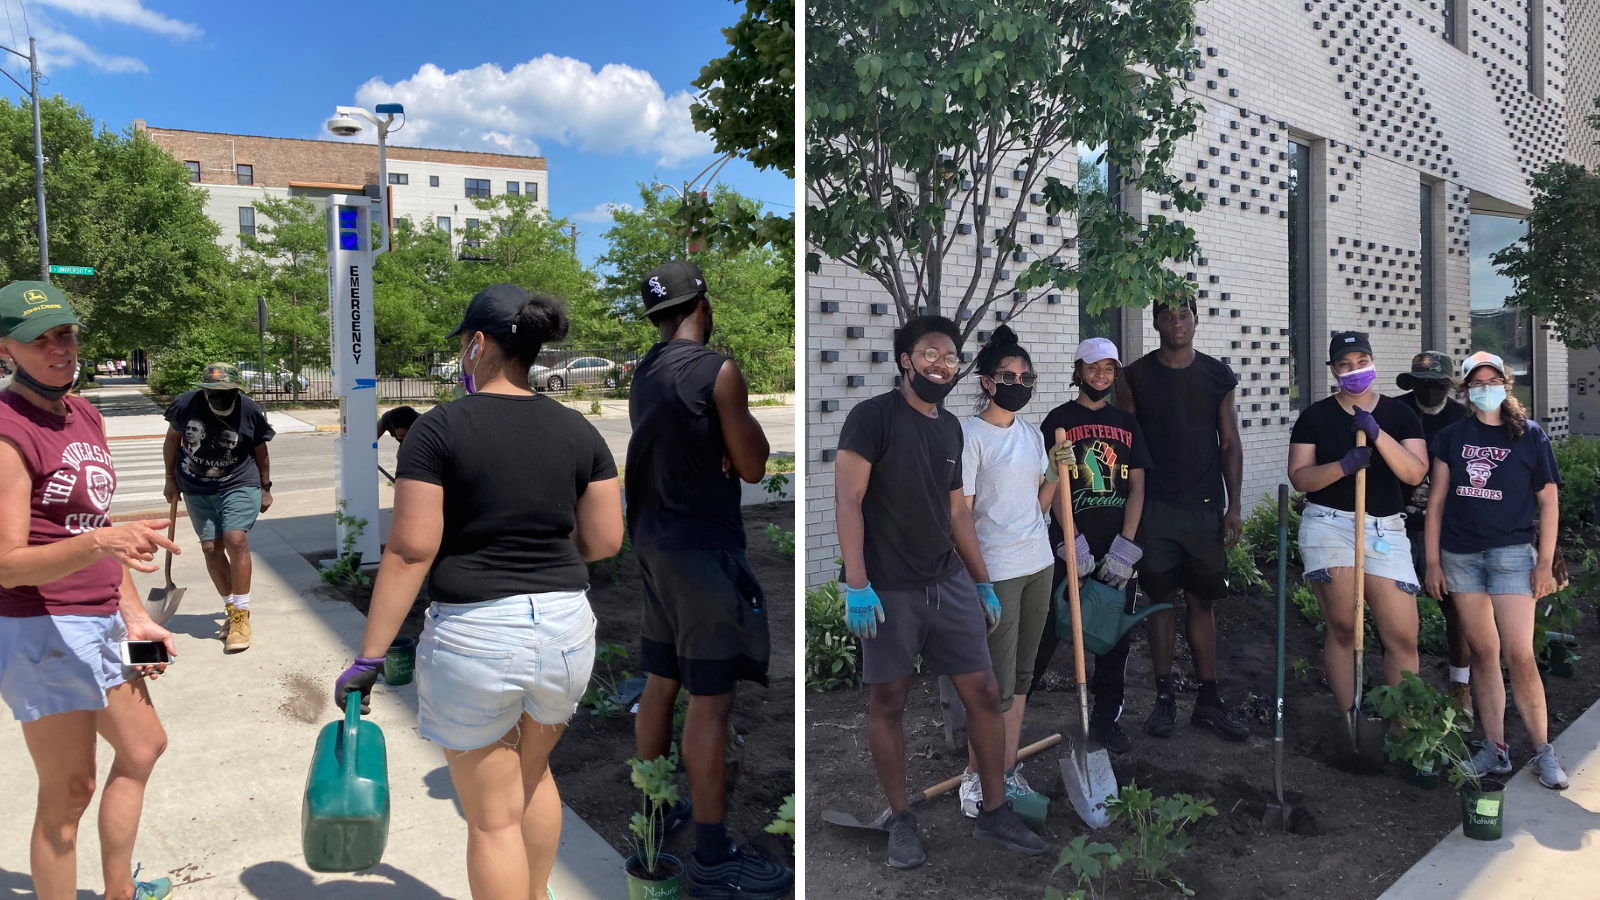 The left side of the image shows a staff member from UChicago Landscape Services advising others on planting during the planting day, and the right shows interns and UChicago Charter staff with shovels in front of the UCW building garden